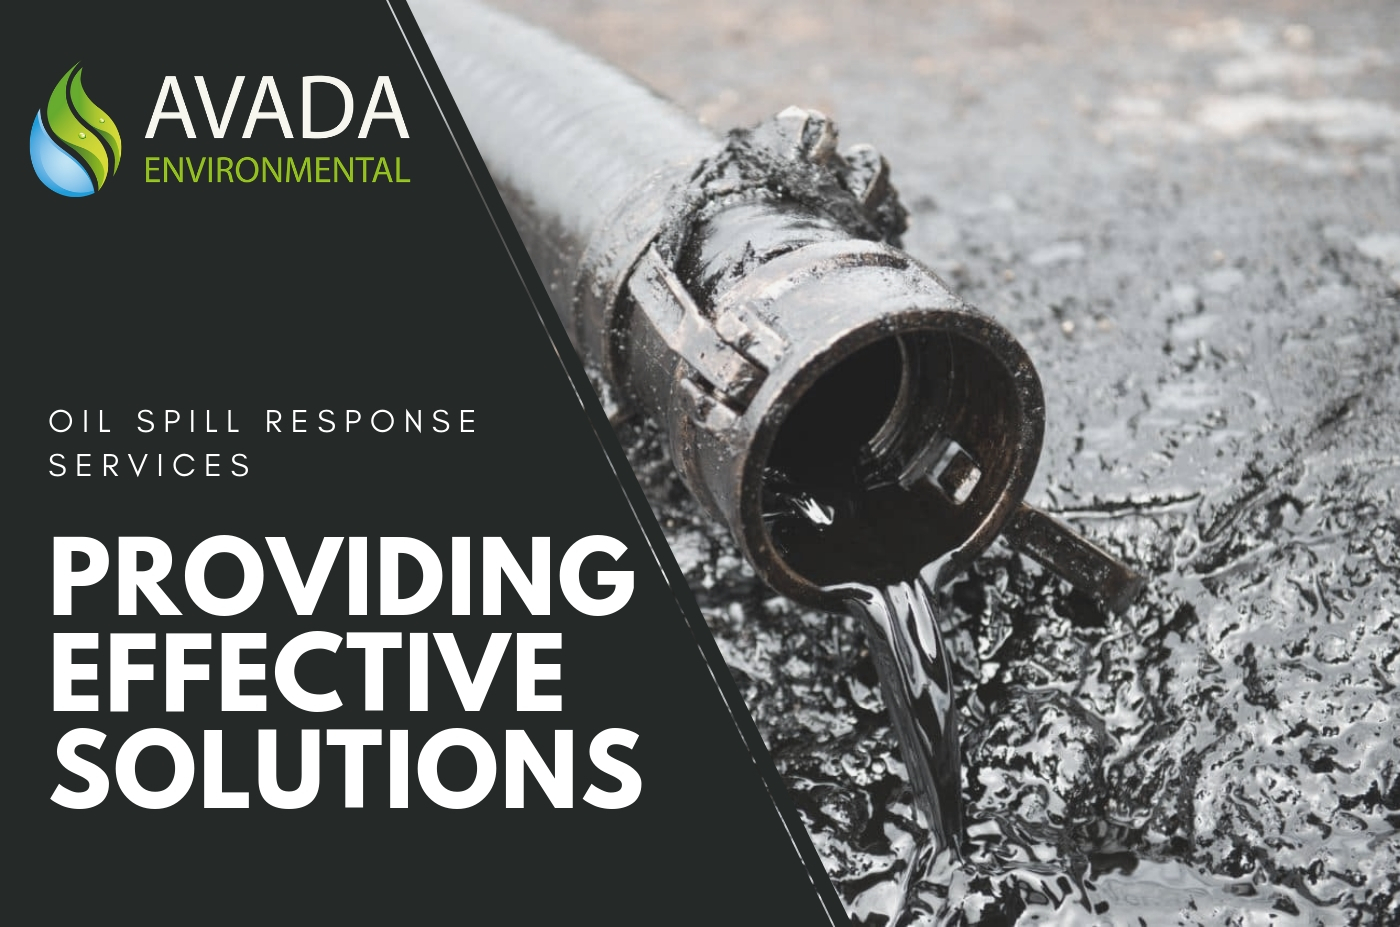 AVADA Environmental oil spill response